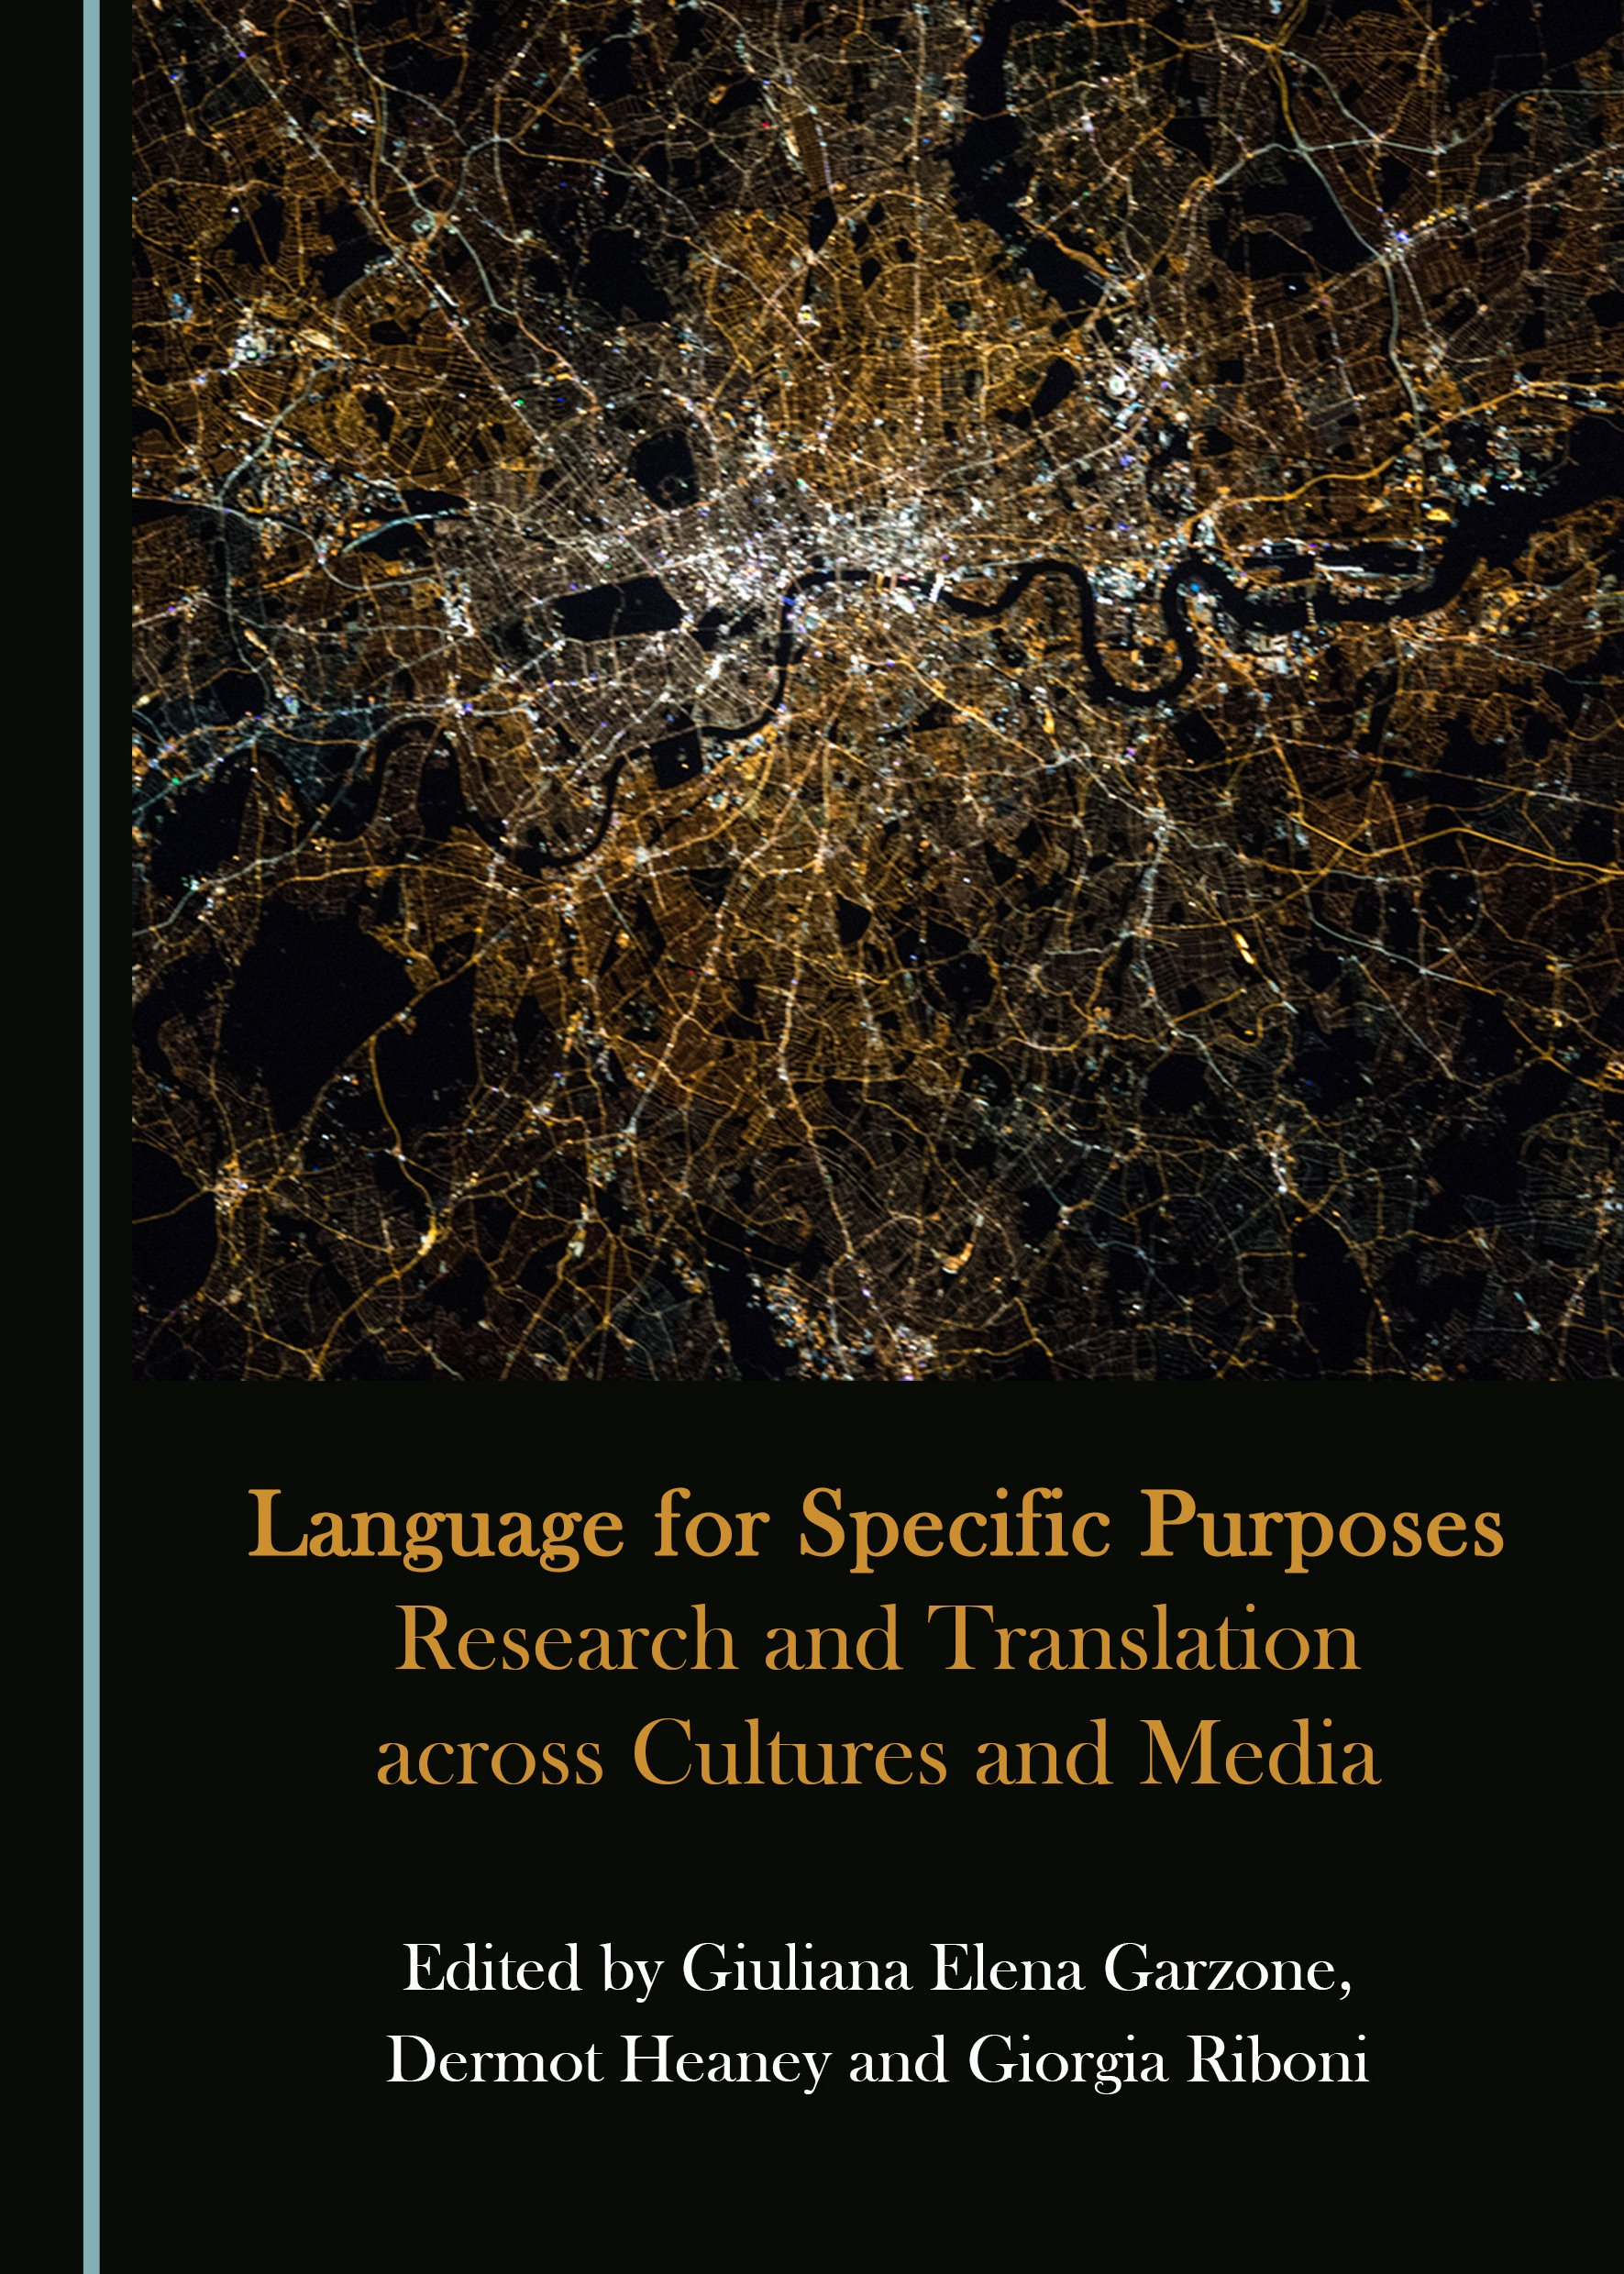 Language for Specific Purposes: Research and Translation across Cultures and Media